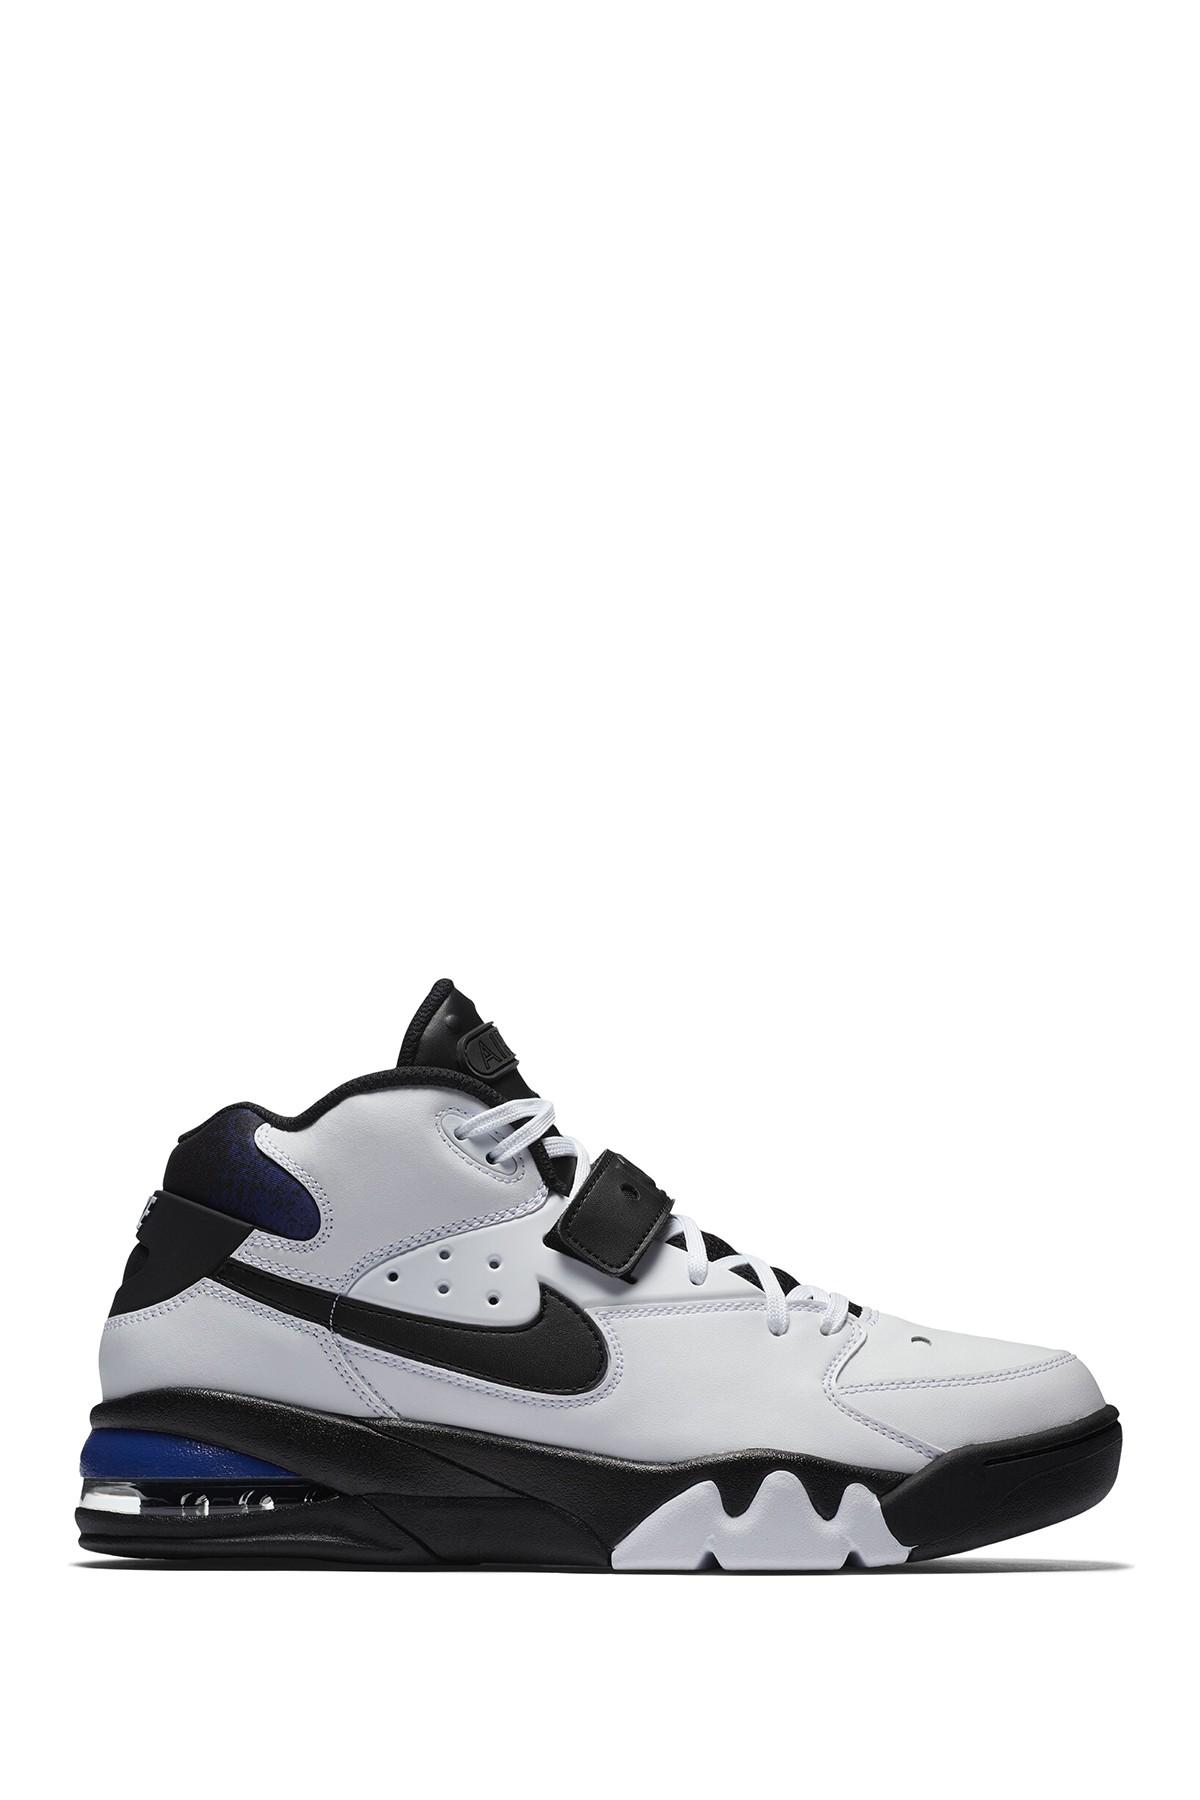 Nike Leather Air Force Max 93 Sneaker in Black for Men - Lyst